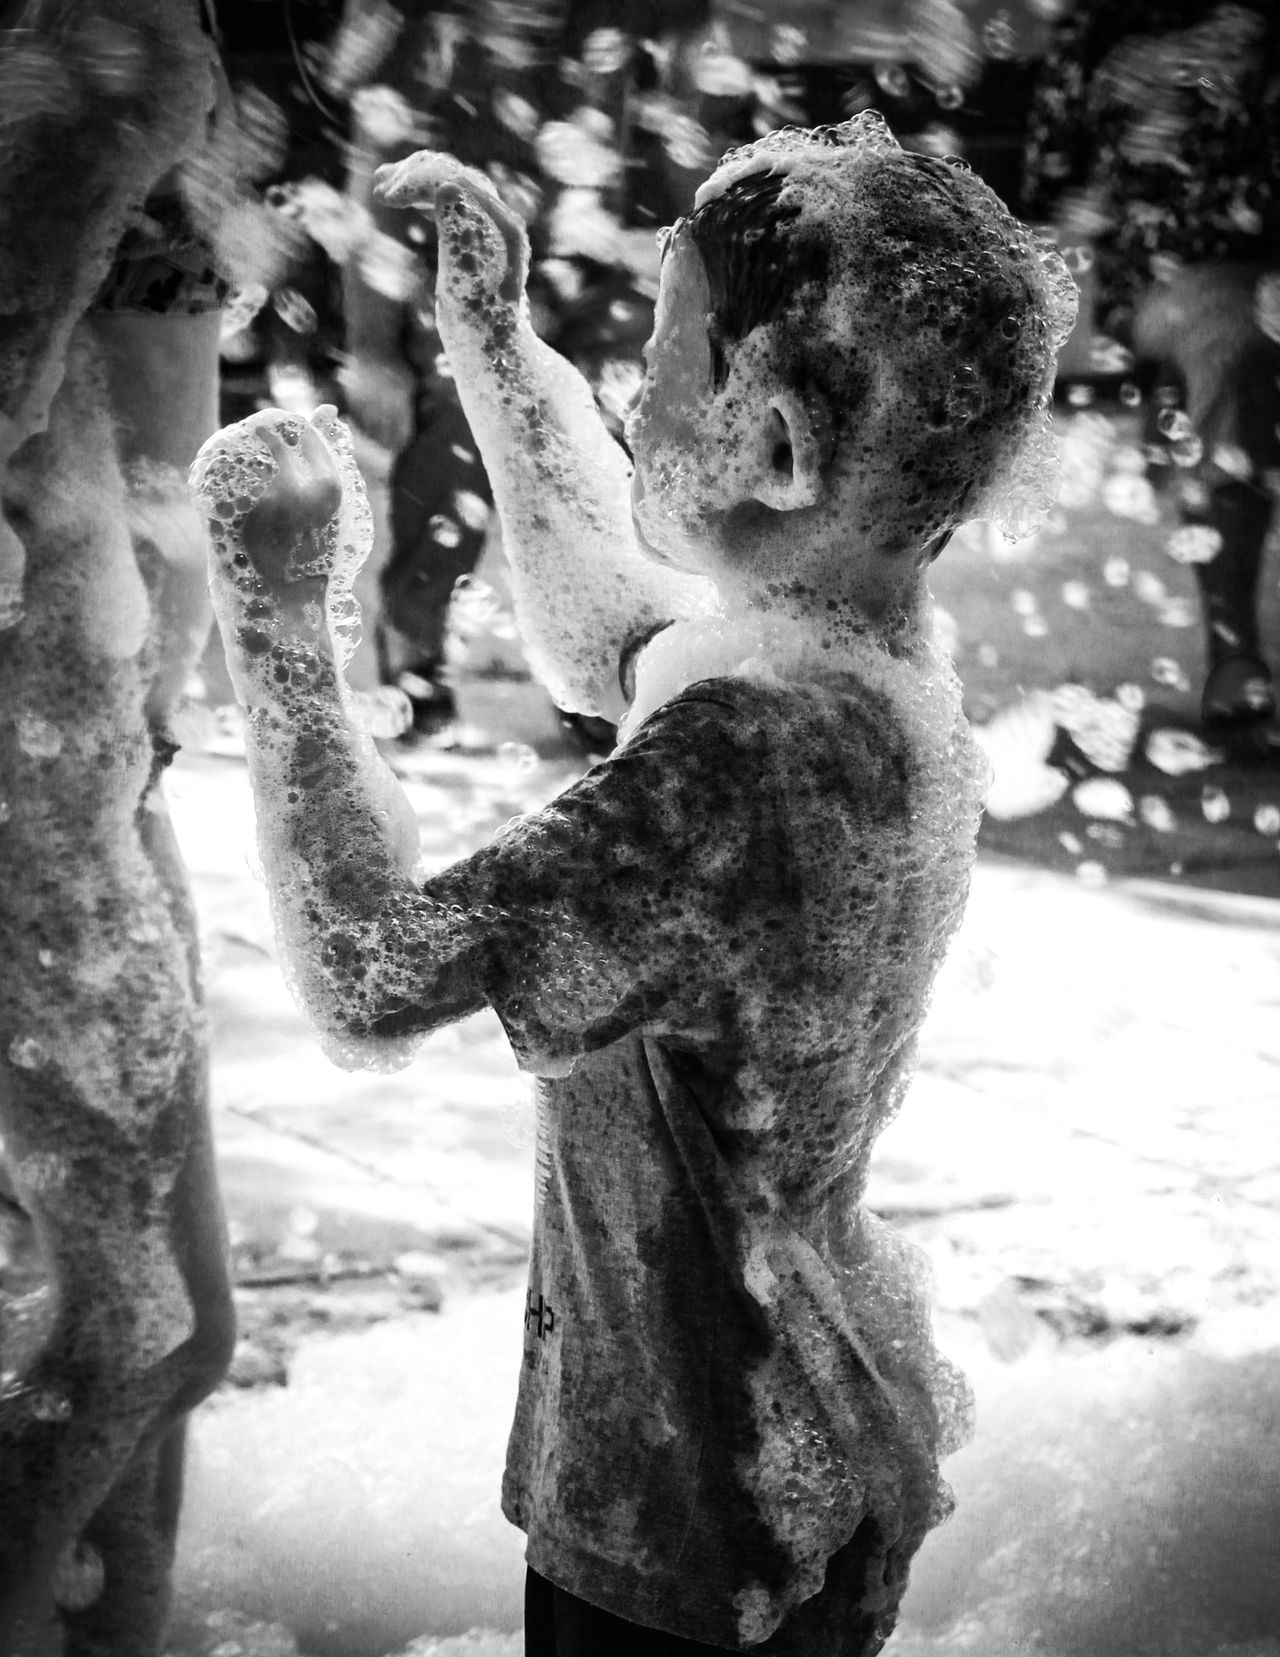 Check This Out EyeEm Gallery Enjoying Life Burgos, Spain Fiestas De Pueblo Covarrubias Black And White Bnw_collection People And Places Foam Foam Party Foamparty Childhood Children Person Enjoying Splashing Spraying Fun Dirty Standing Leisure Activity Monochrome Photography Lifestyles Fiesta De La Espuma